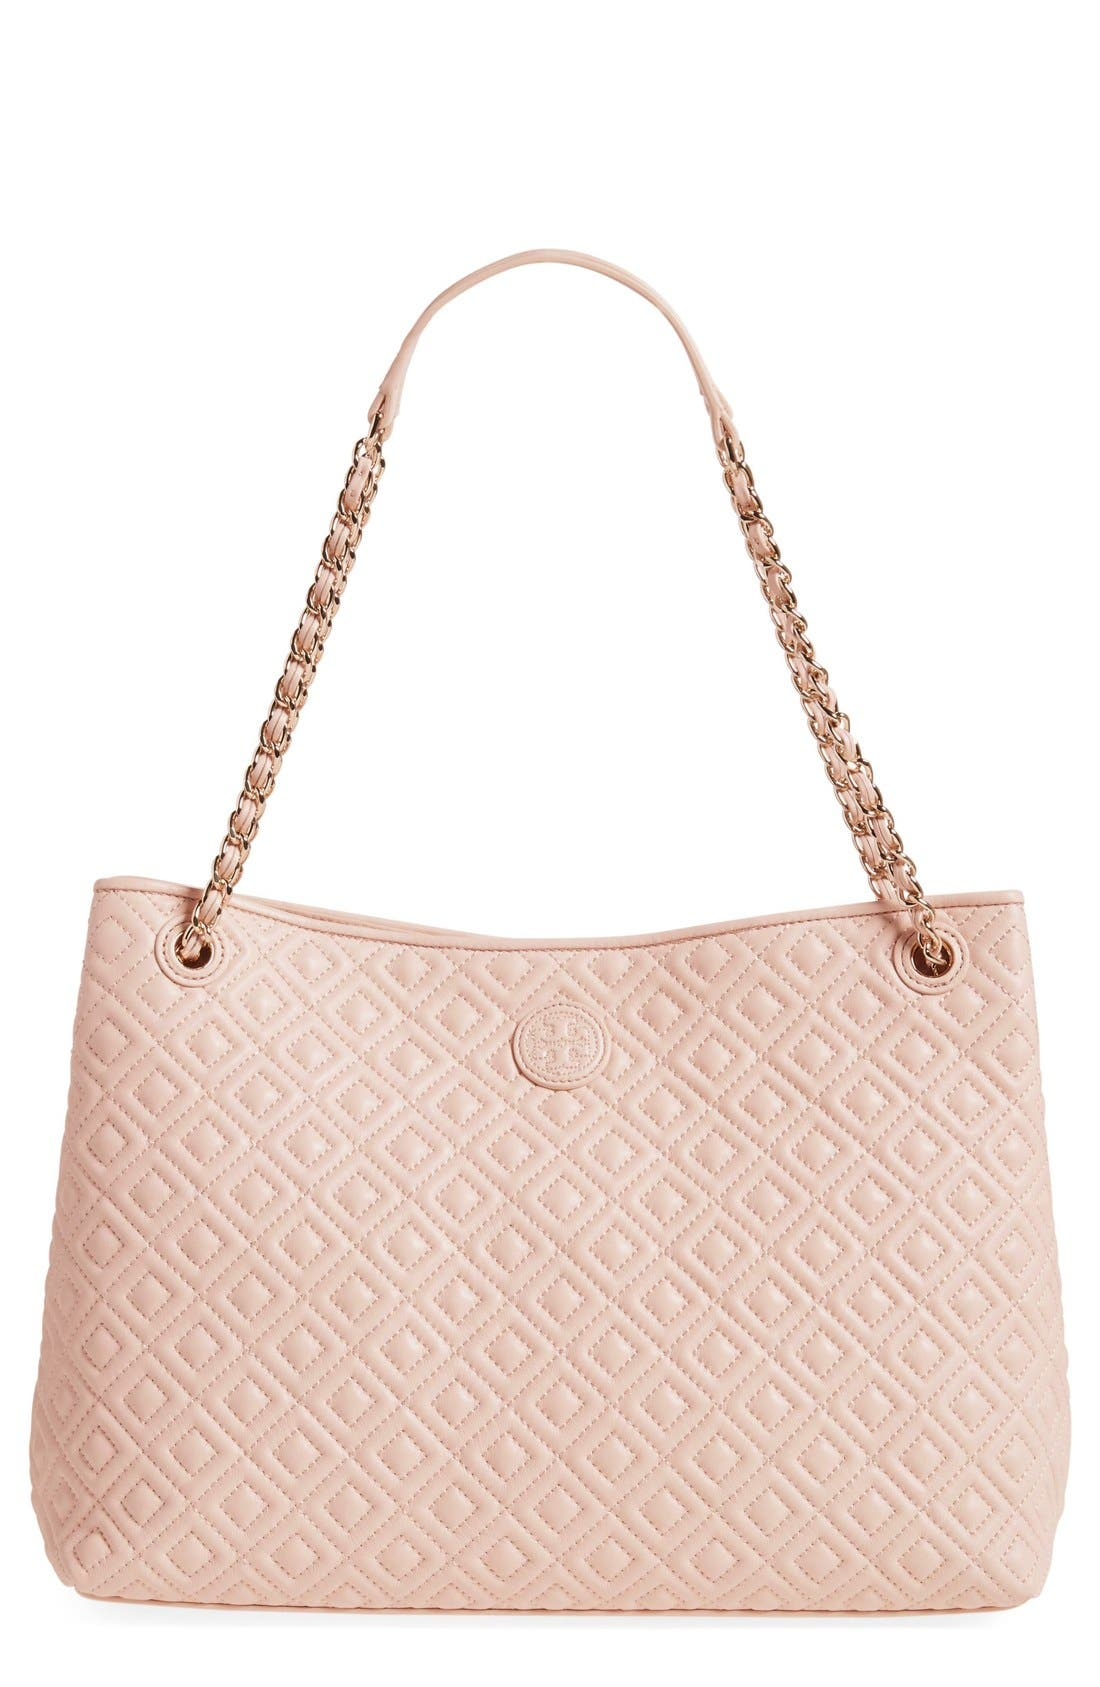 Alternate Image 1 Selected - Tory Burch 'Marion' Diamond Quilted Lambskin Leather Tote